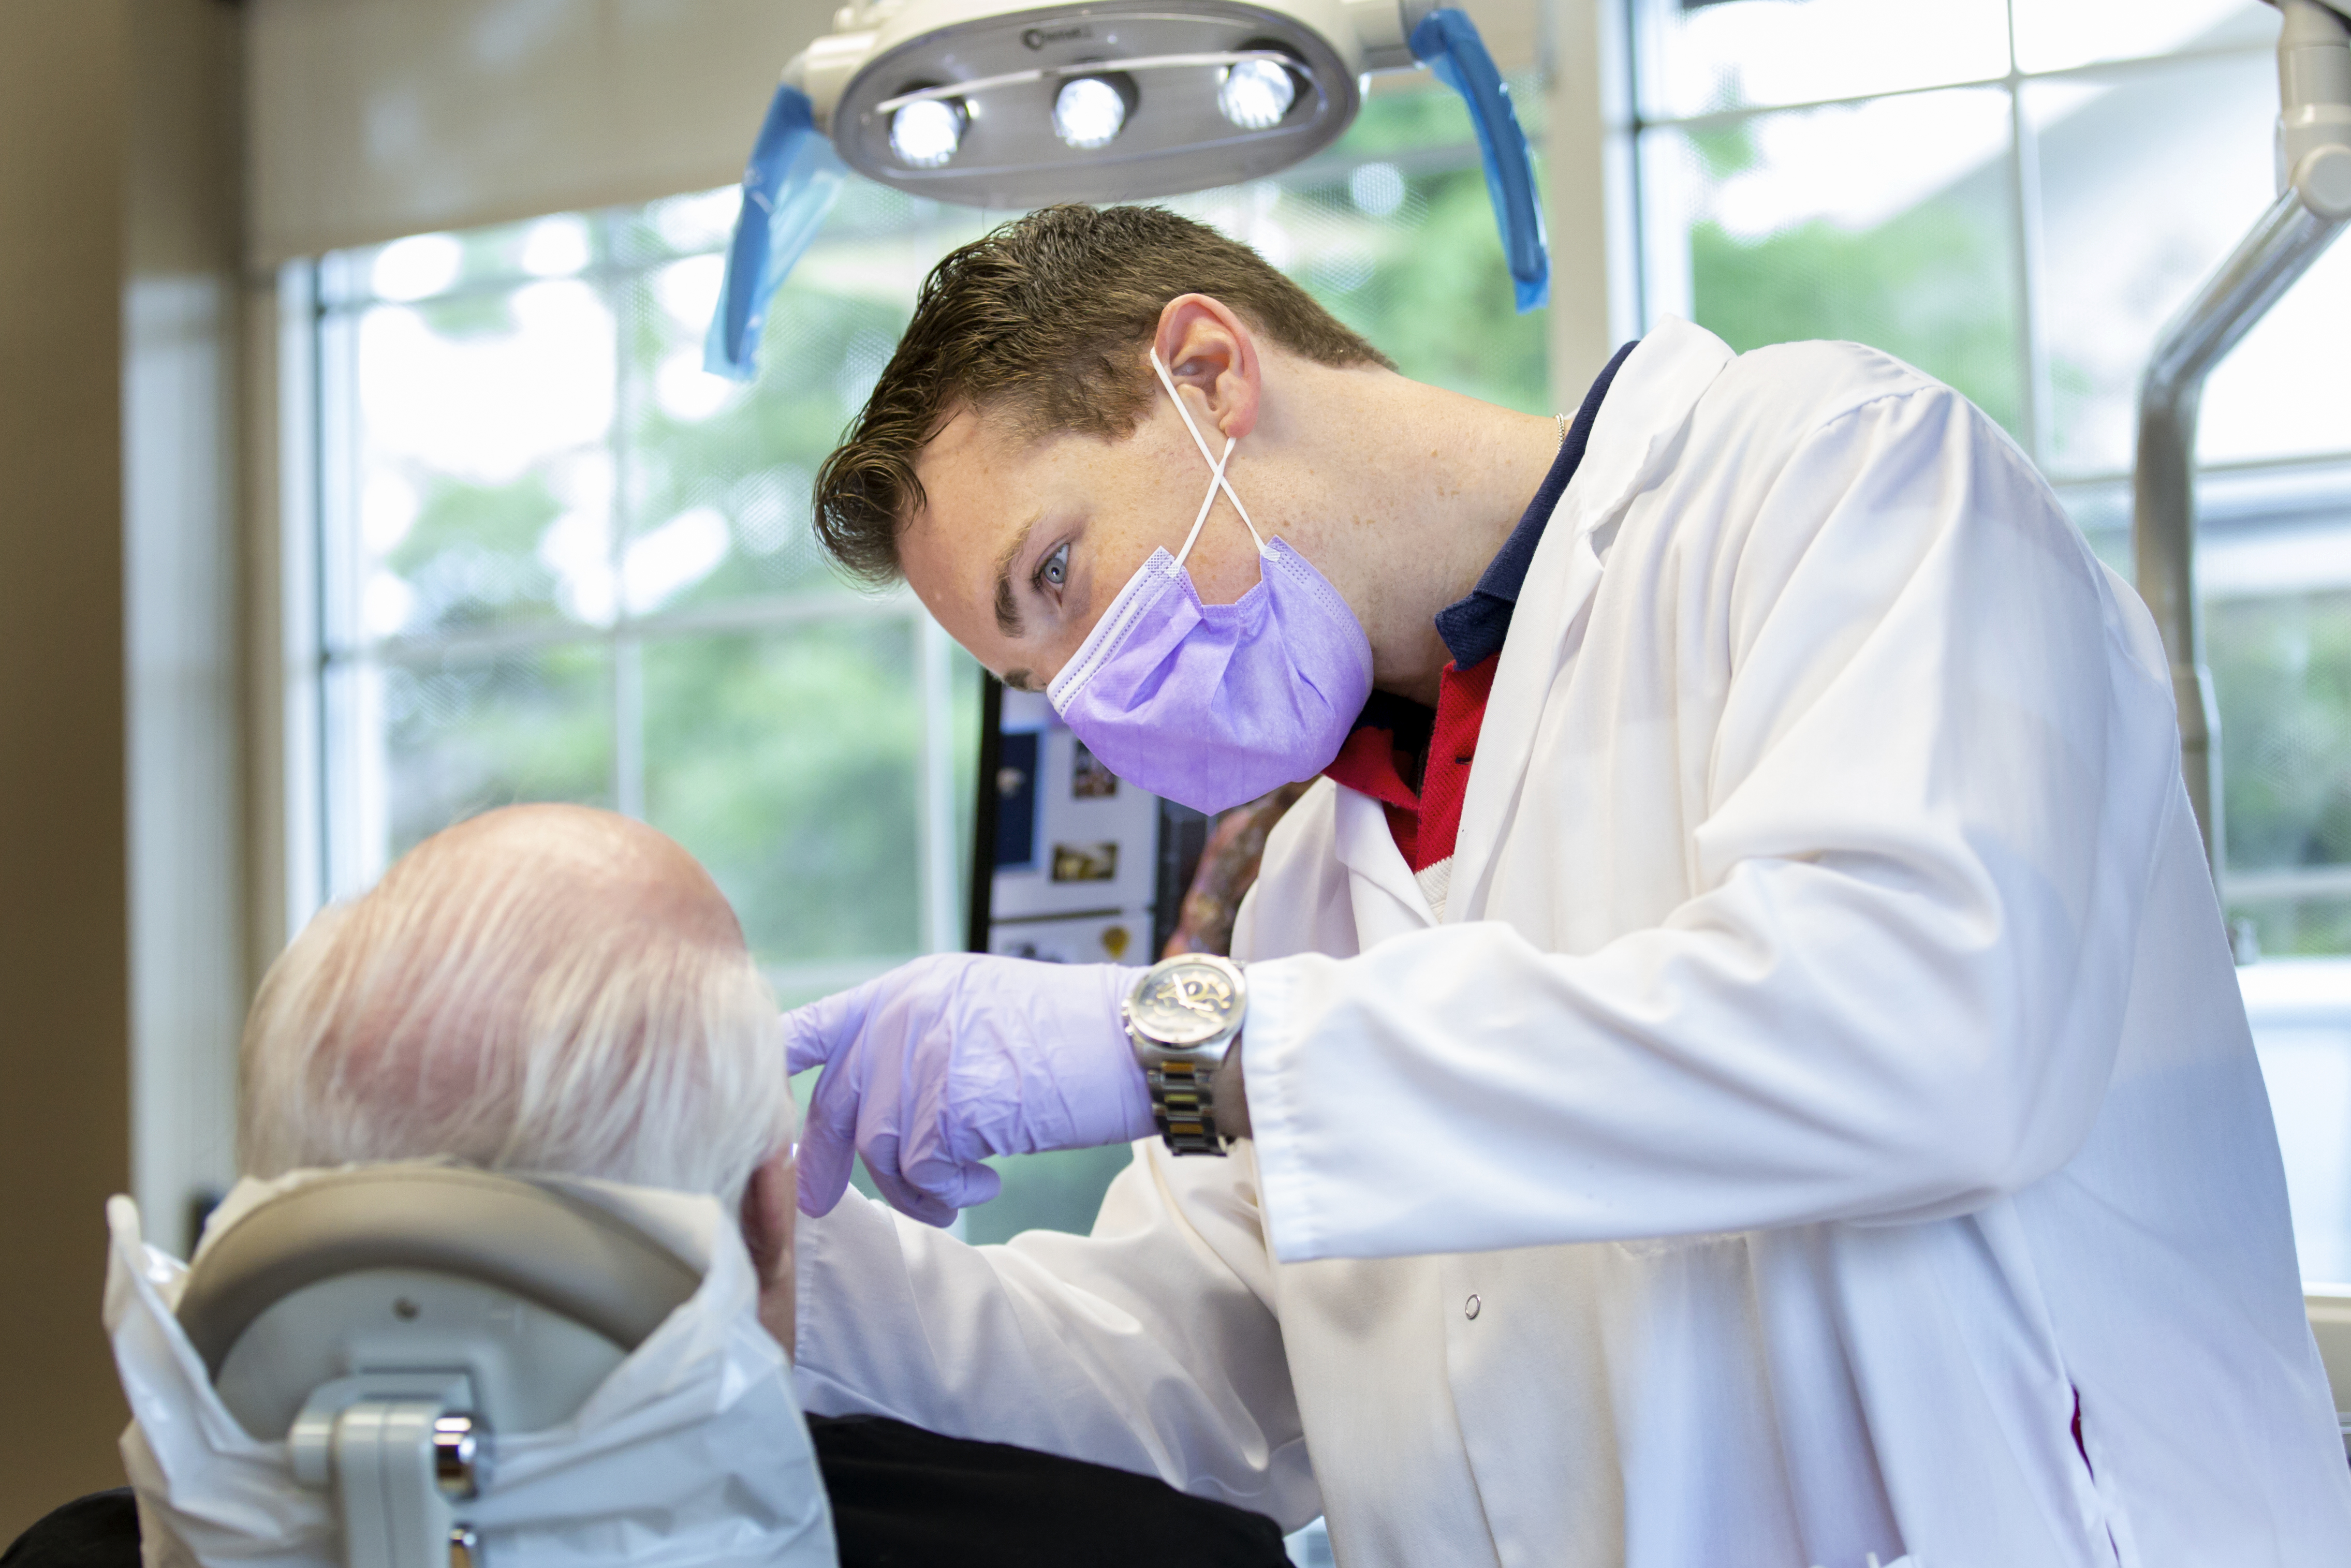 Young Aspen dental employee in PPE examining the mouth of an elderly male patient